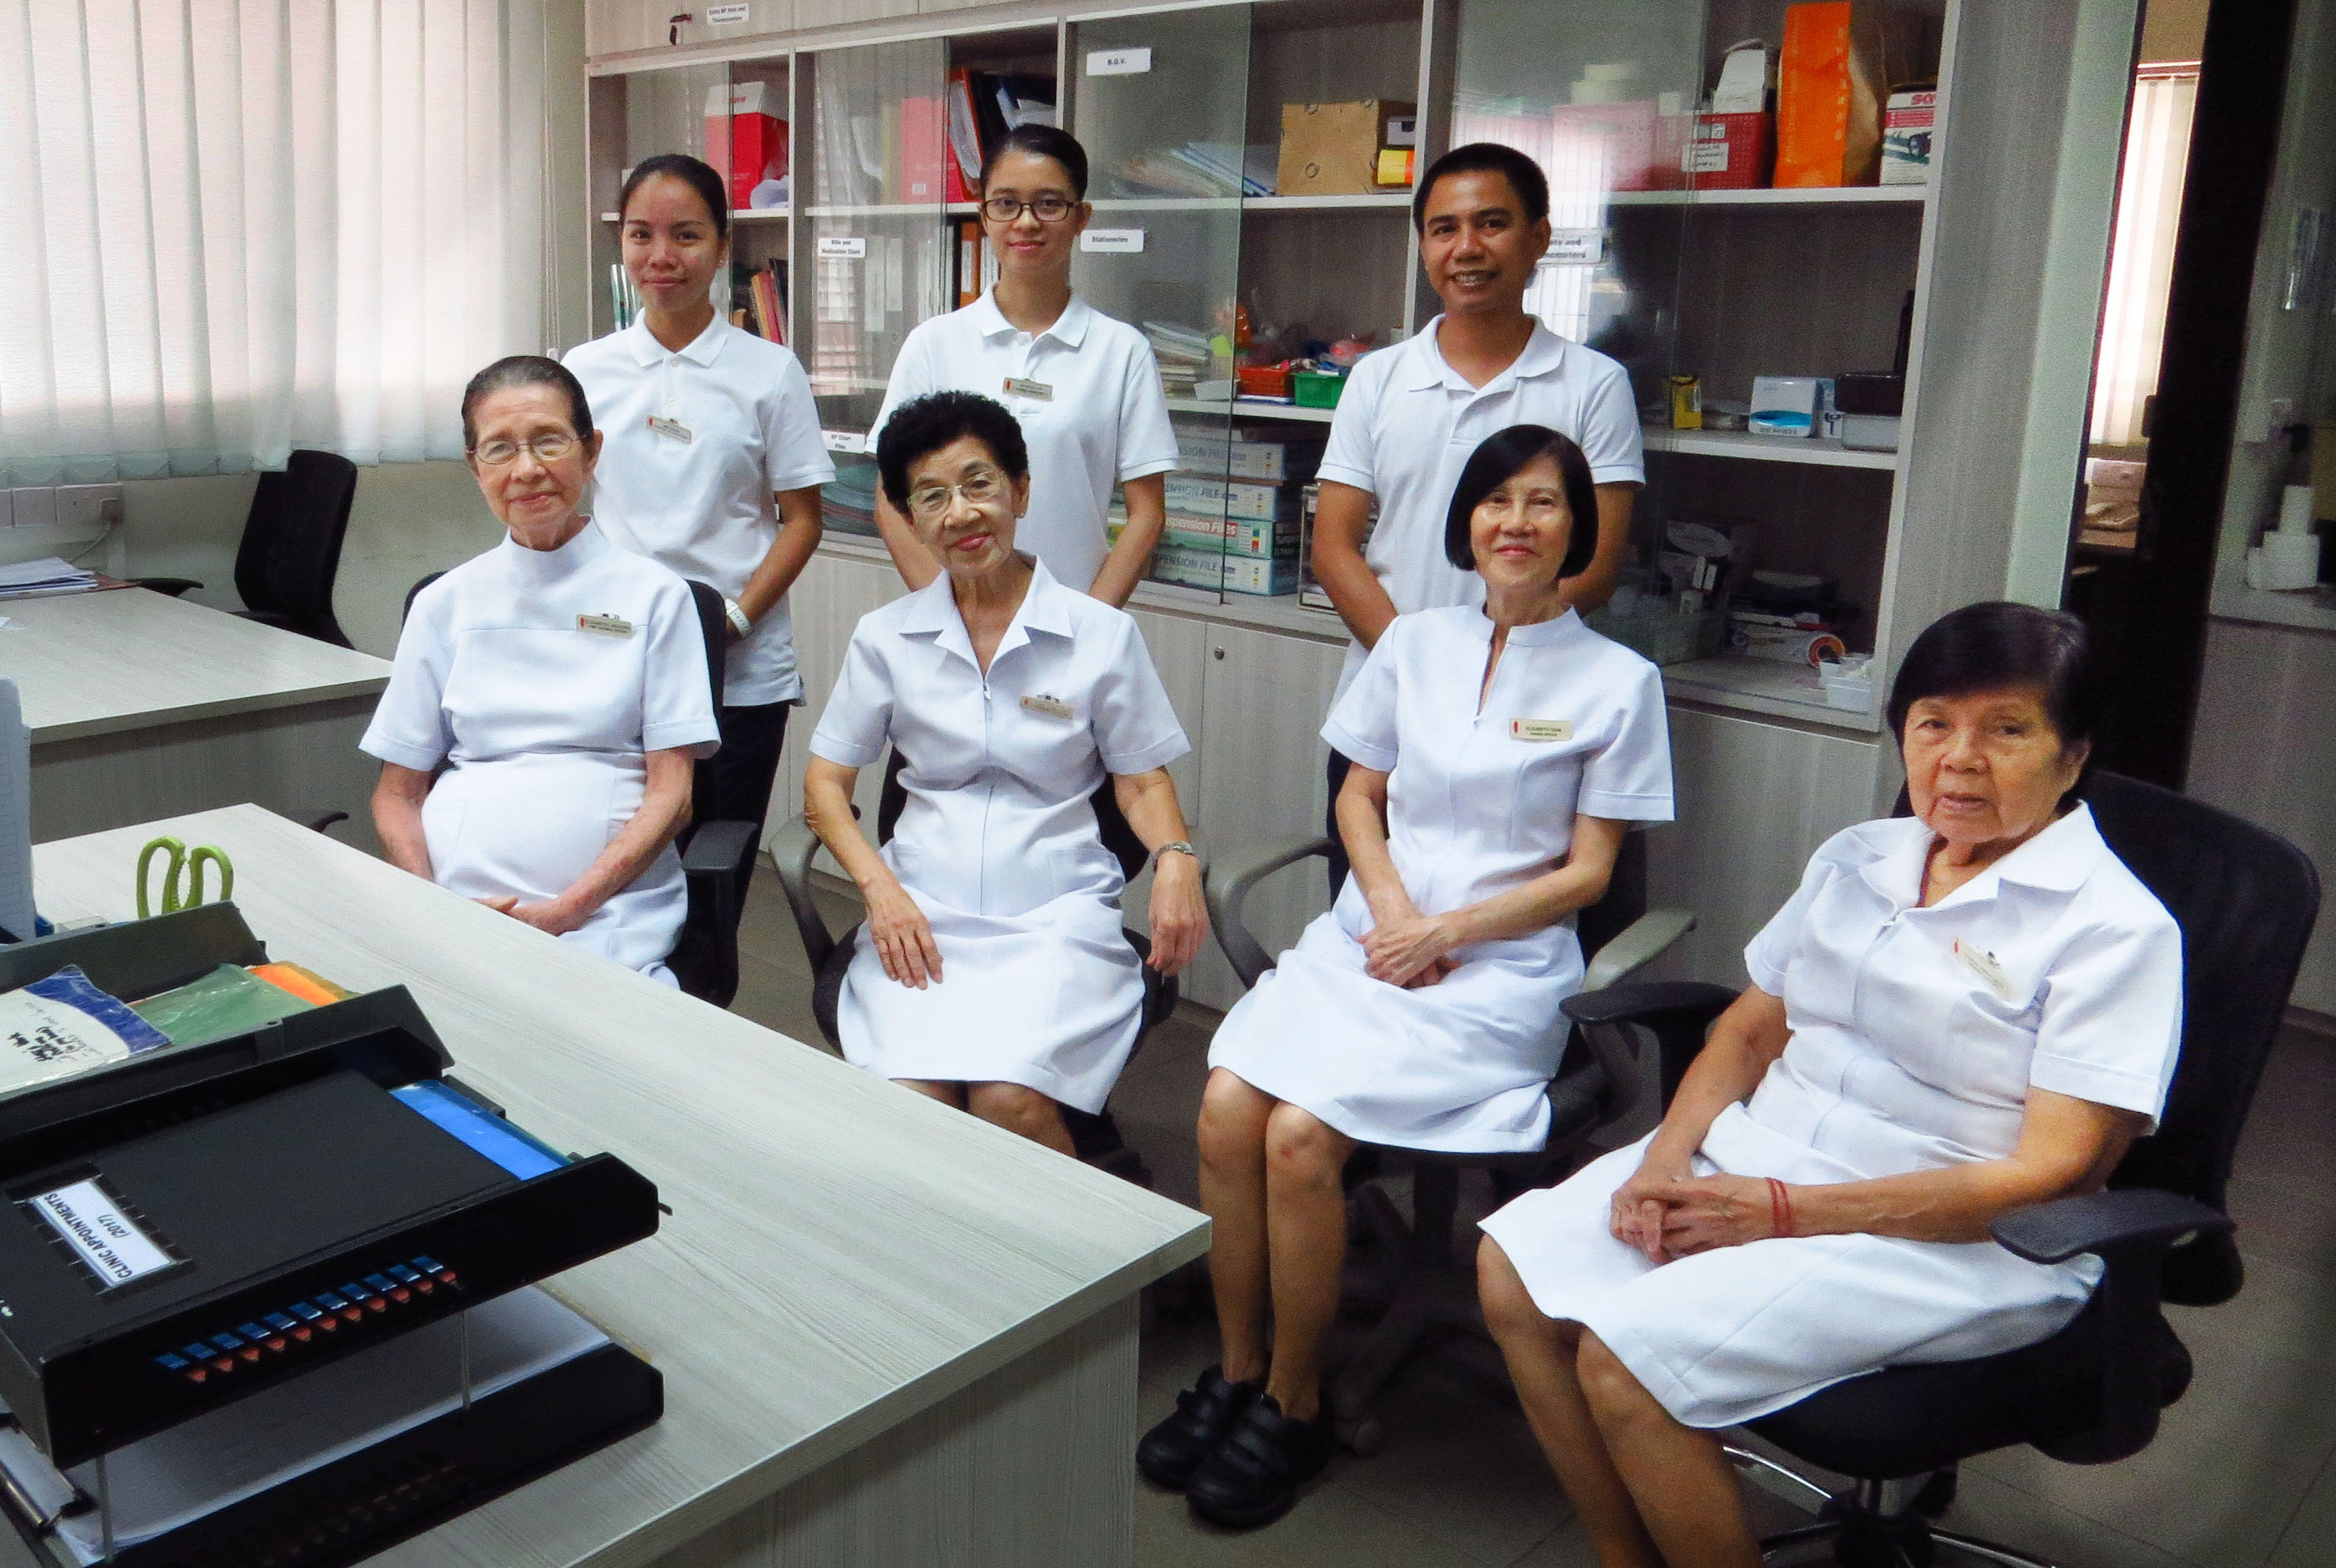 Delightful Standing From Left: Nurse Assistant Melanie, Nurse Assistant Wendy,  Enrolled Nurse Jervy Seated Nice Design